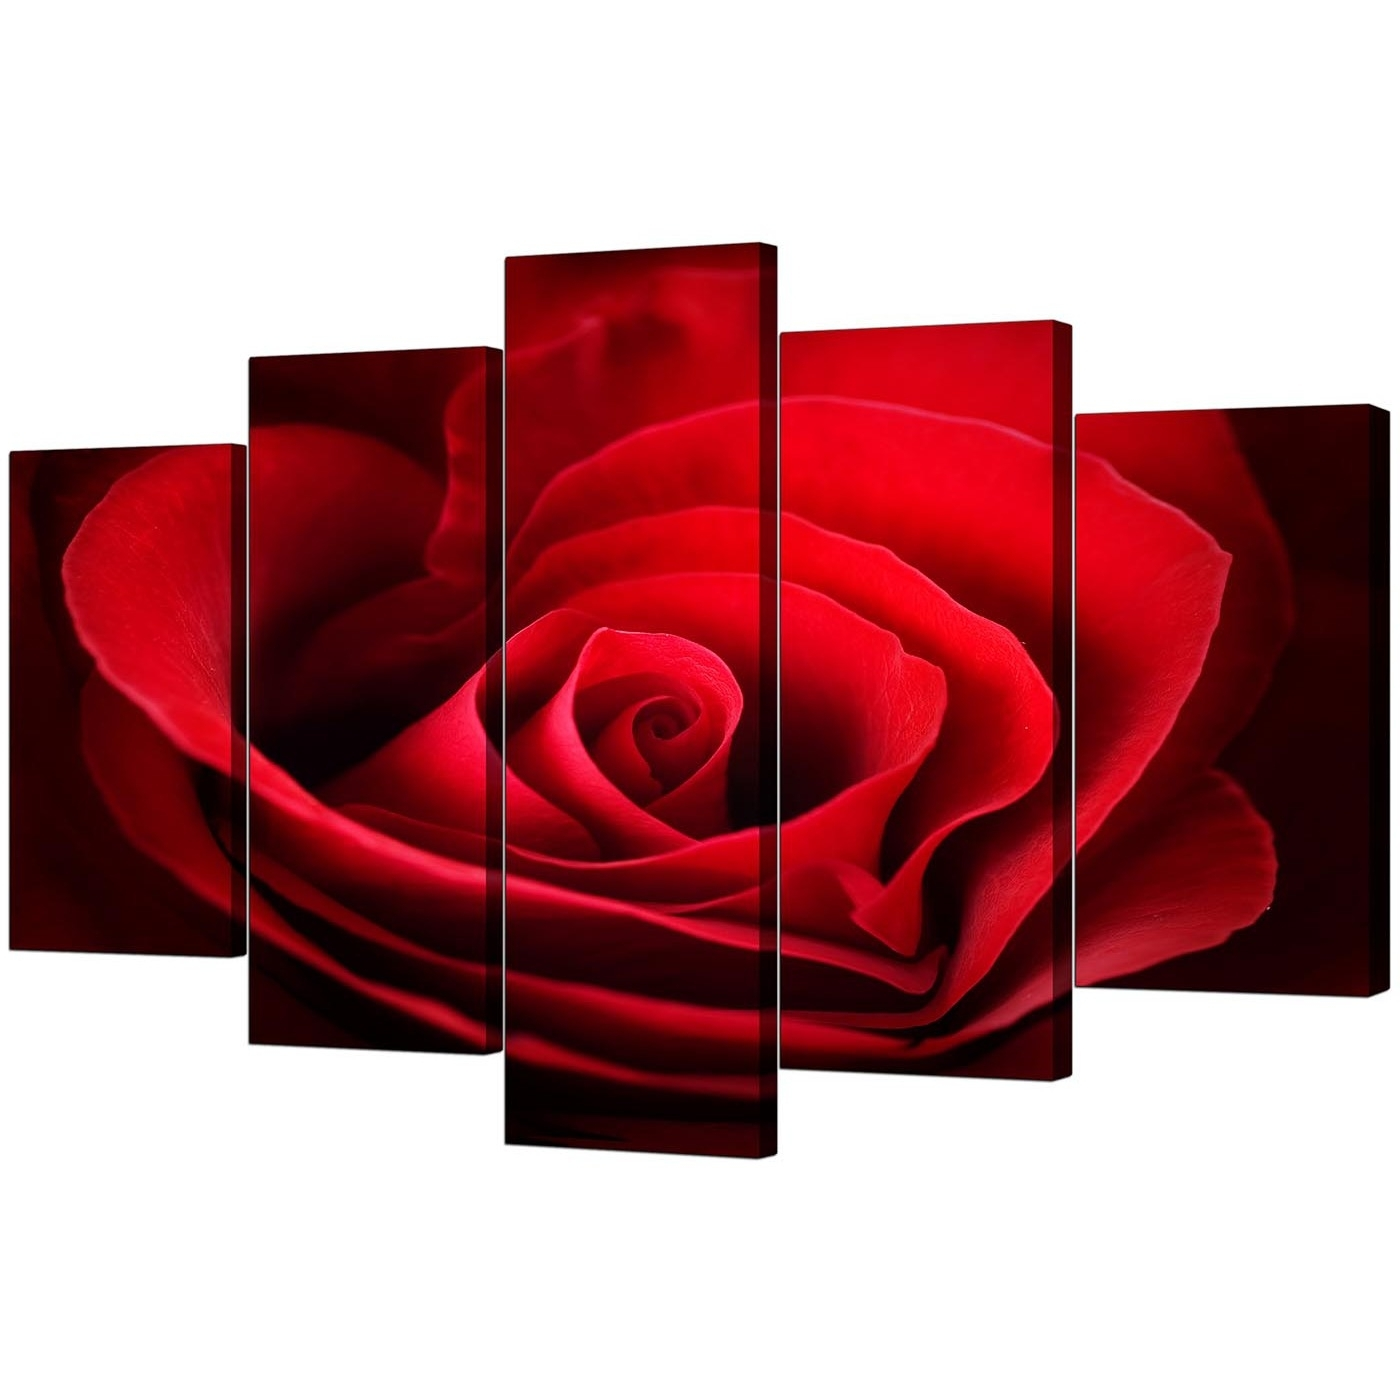 Red Wall Art Intended For Well Known Extra Large Rose Canvas Wall Art 5 Panel In Red (View 10 of 15)